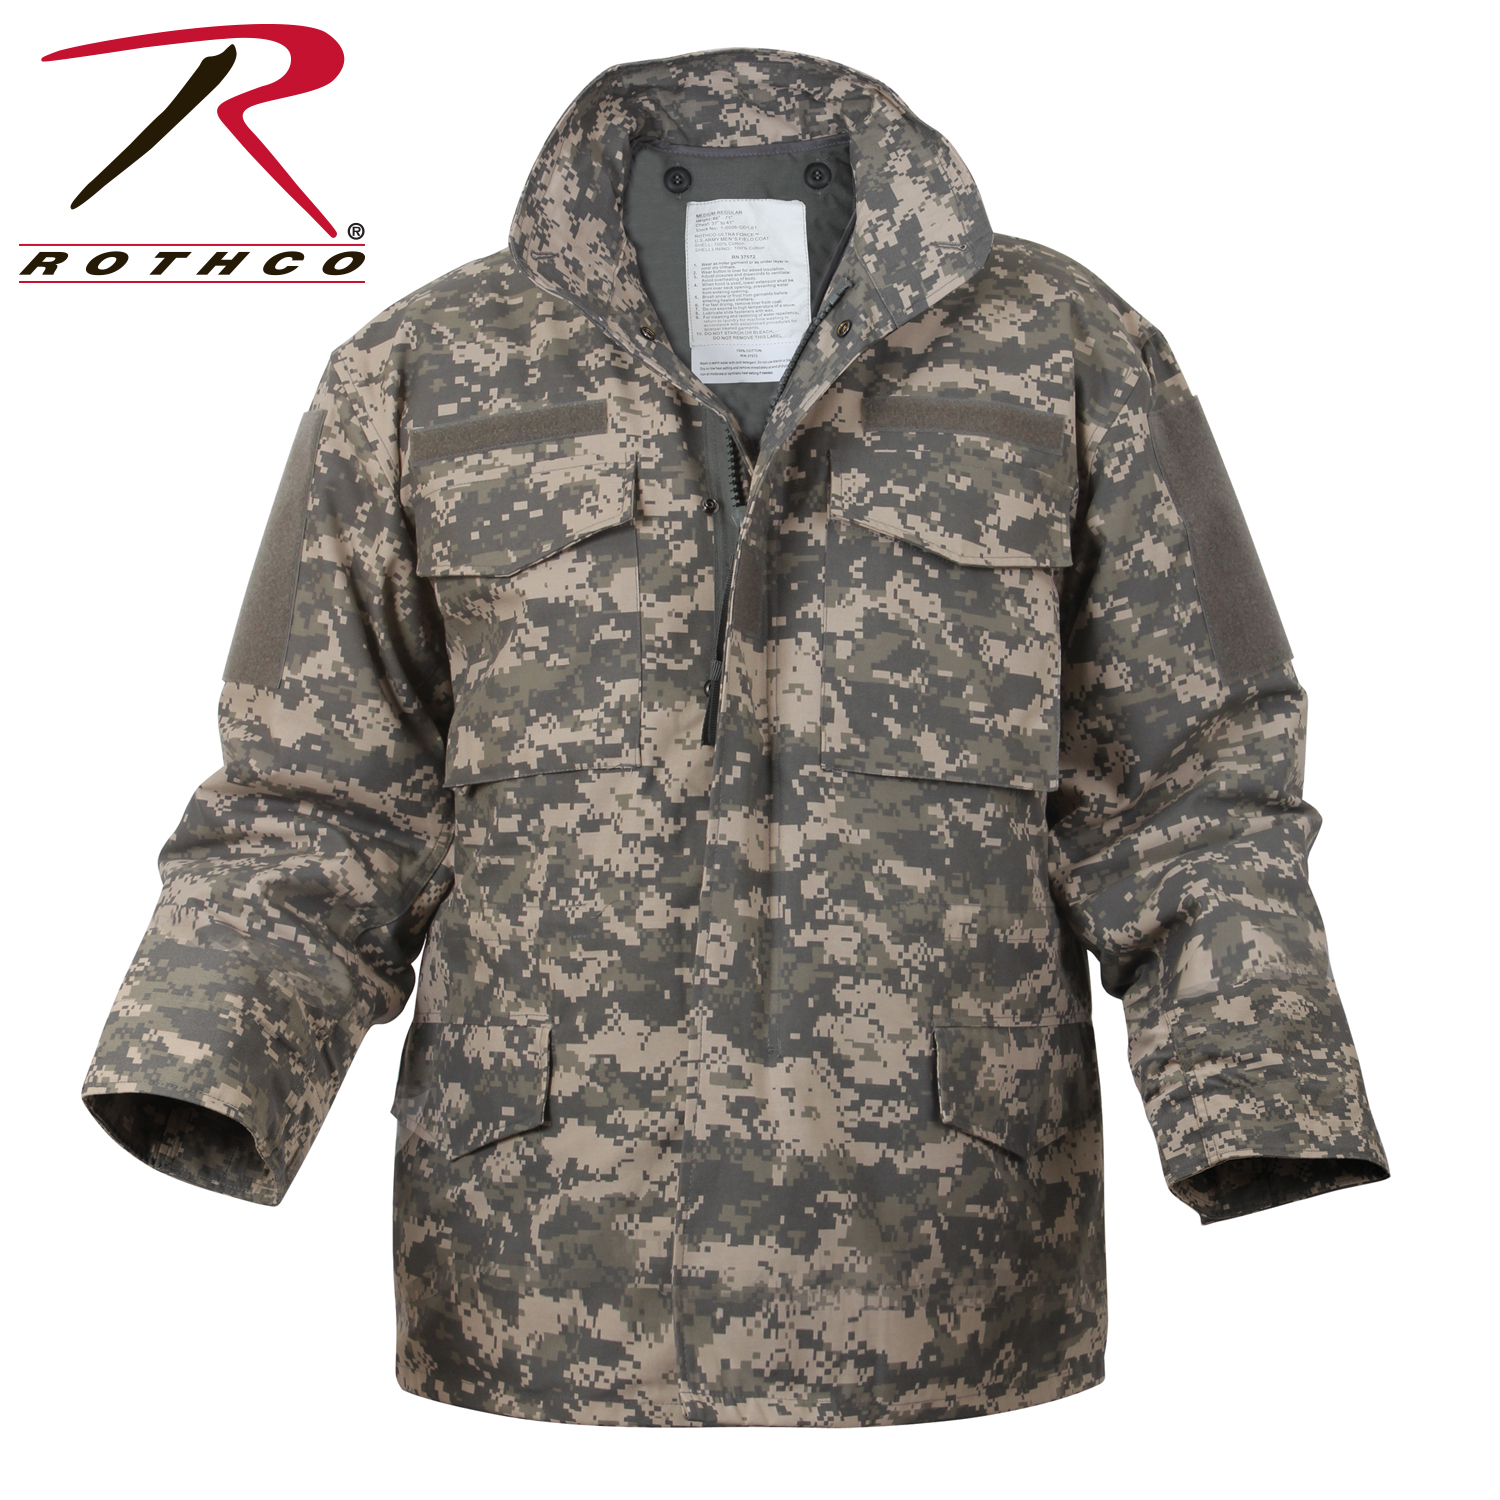 09cc026cacbcb Digital Camo M-65 Field Jacket, m65 field jacket, field jacket, digital.  Loading zoom